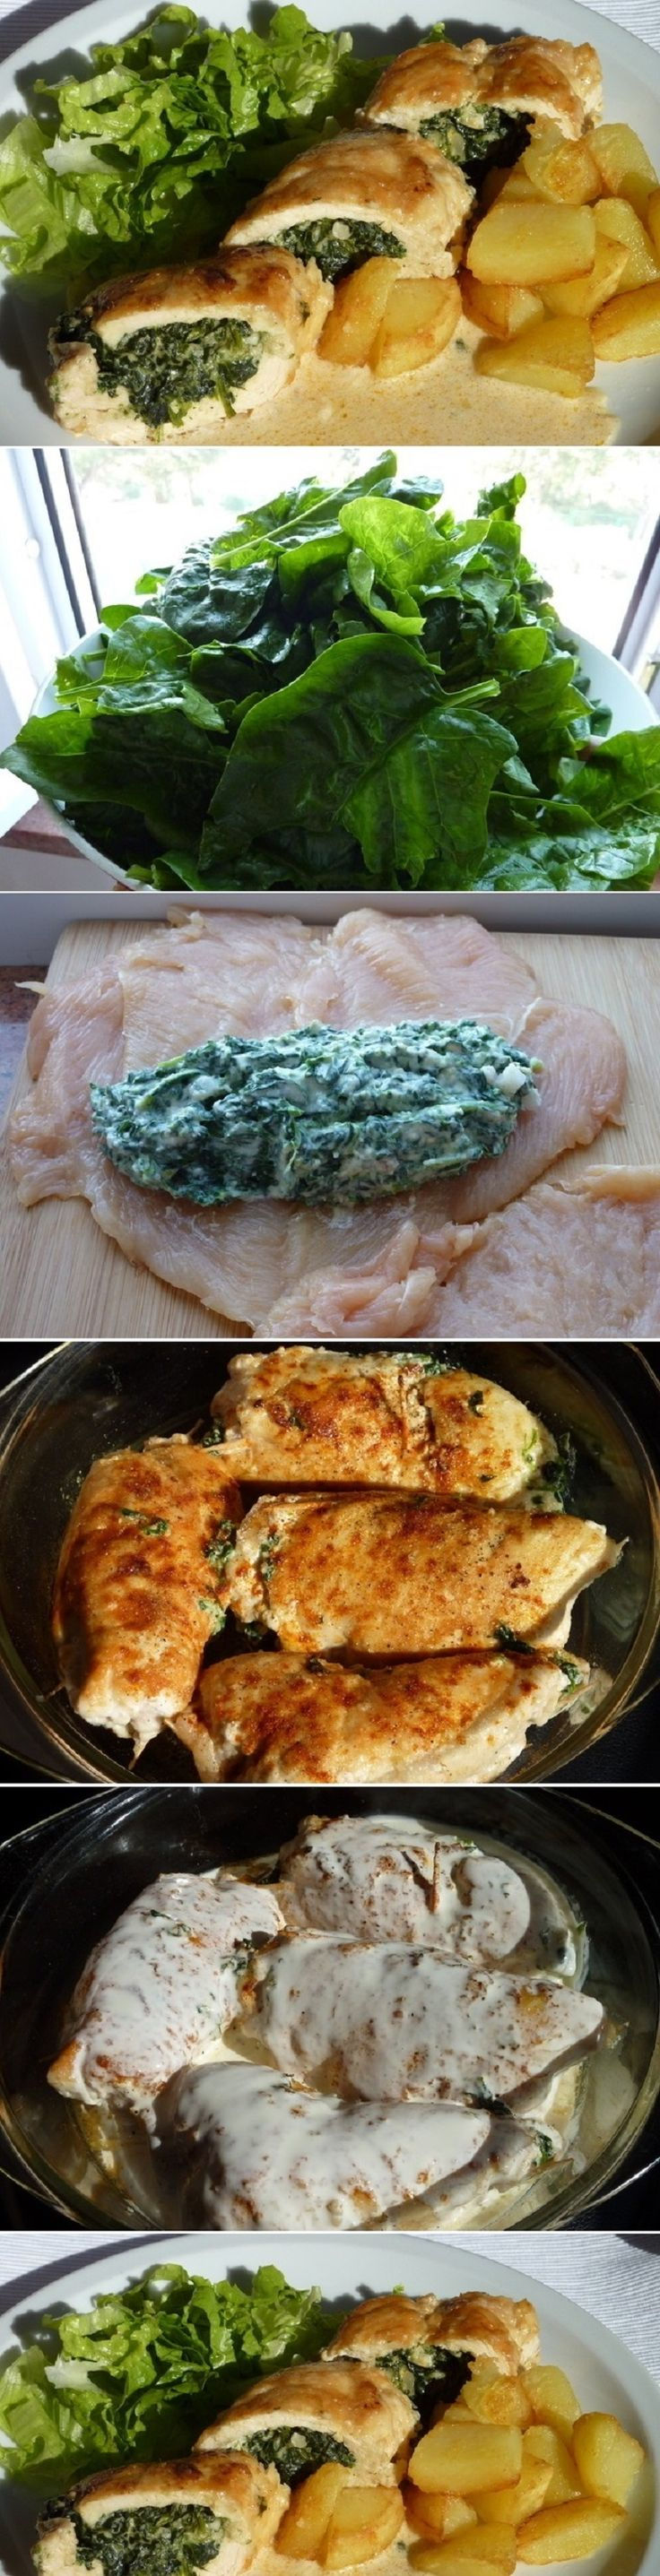 Chicken Rolls with Spinach and Cheese - Fav Recipes